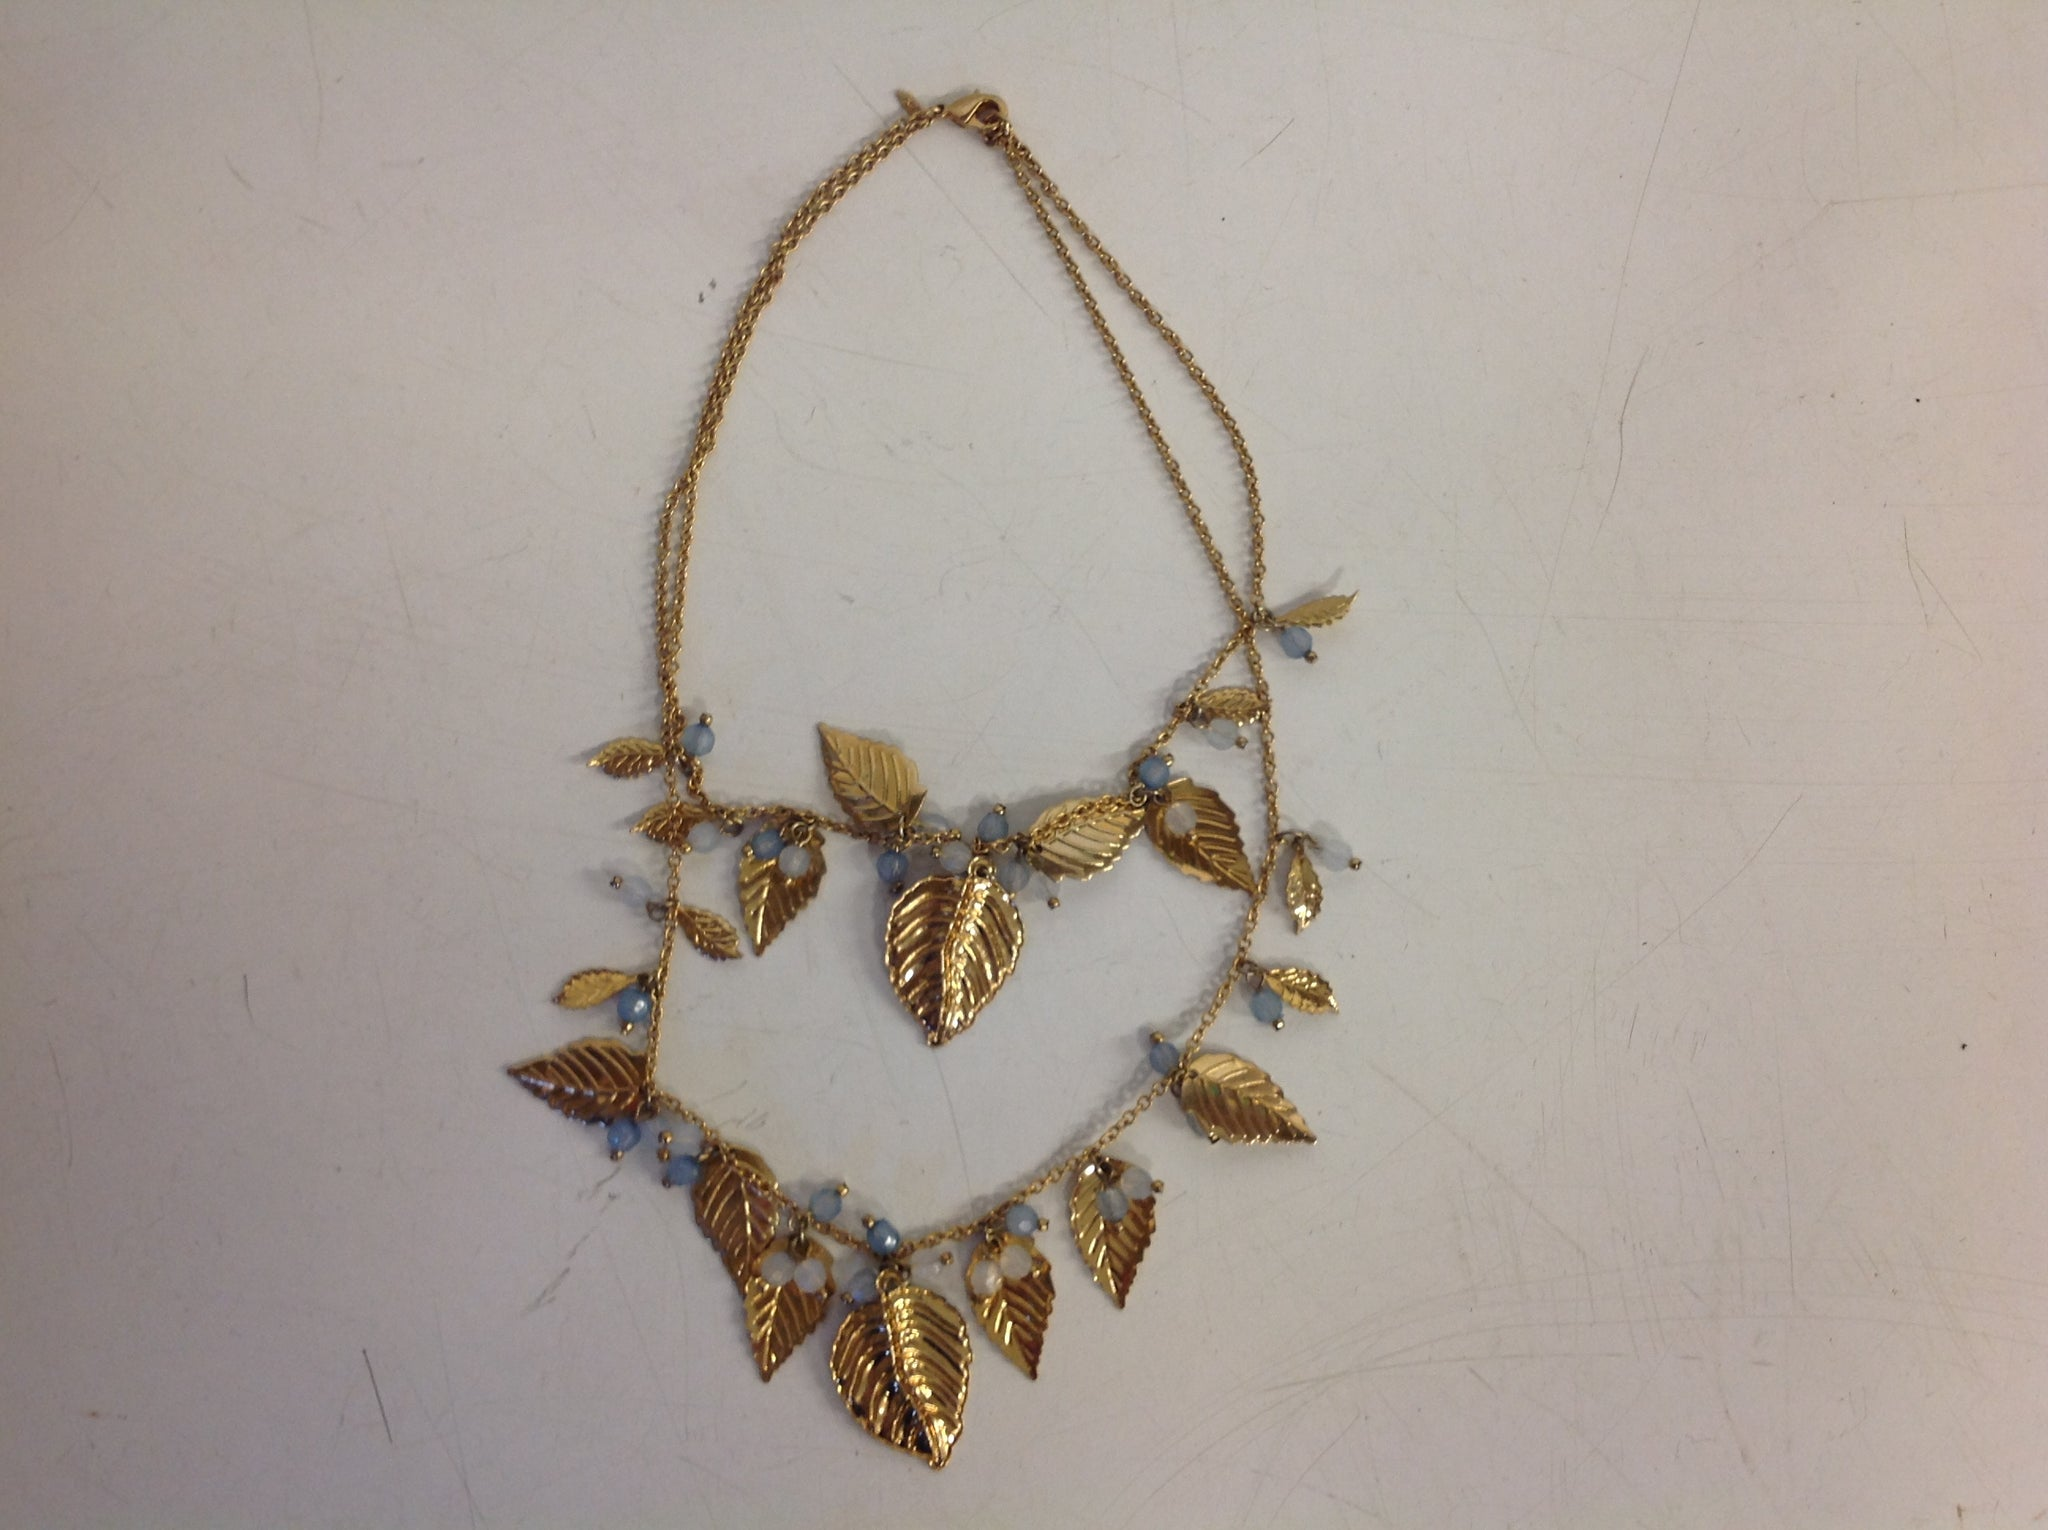 Vintage Goldtone Acanthus Leaf Double Strand Faux Crystal Chain Necklace